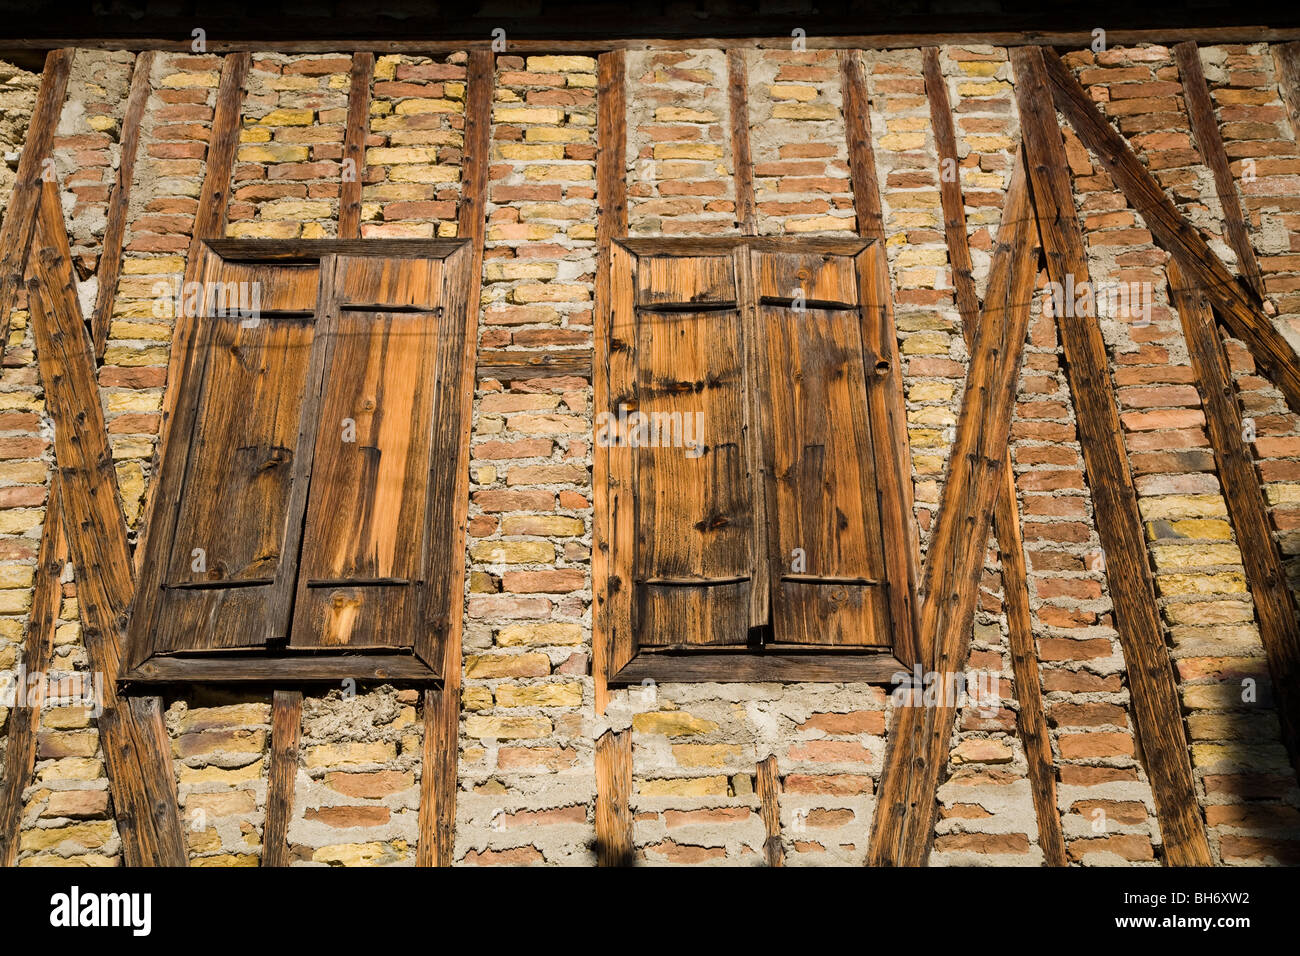 Architectural details from Safranbolu houses Turkey - Stock Image